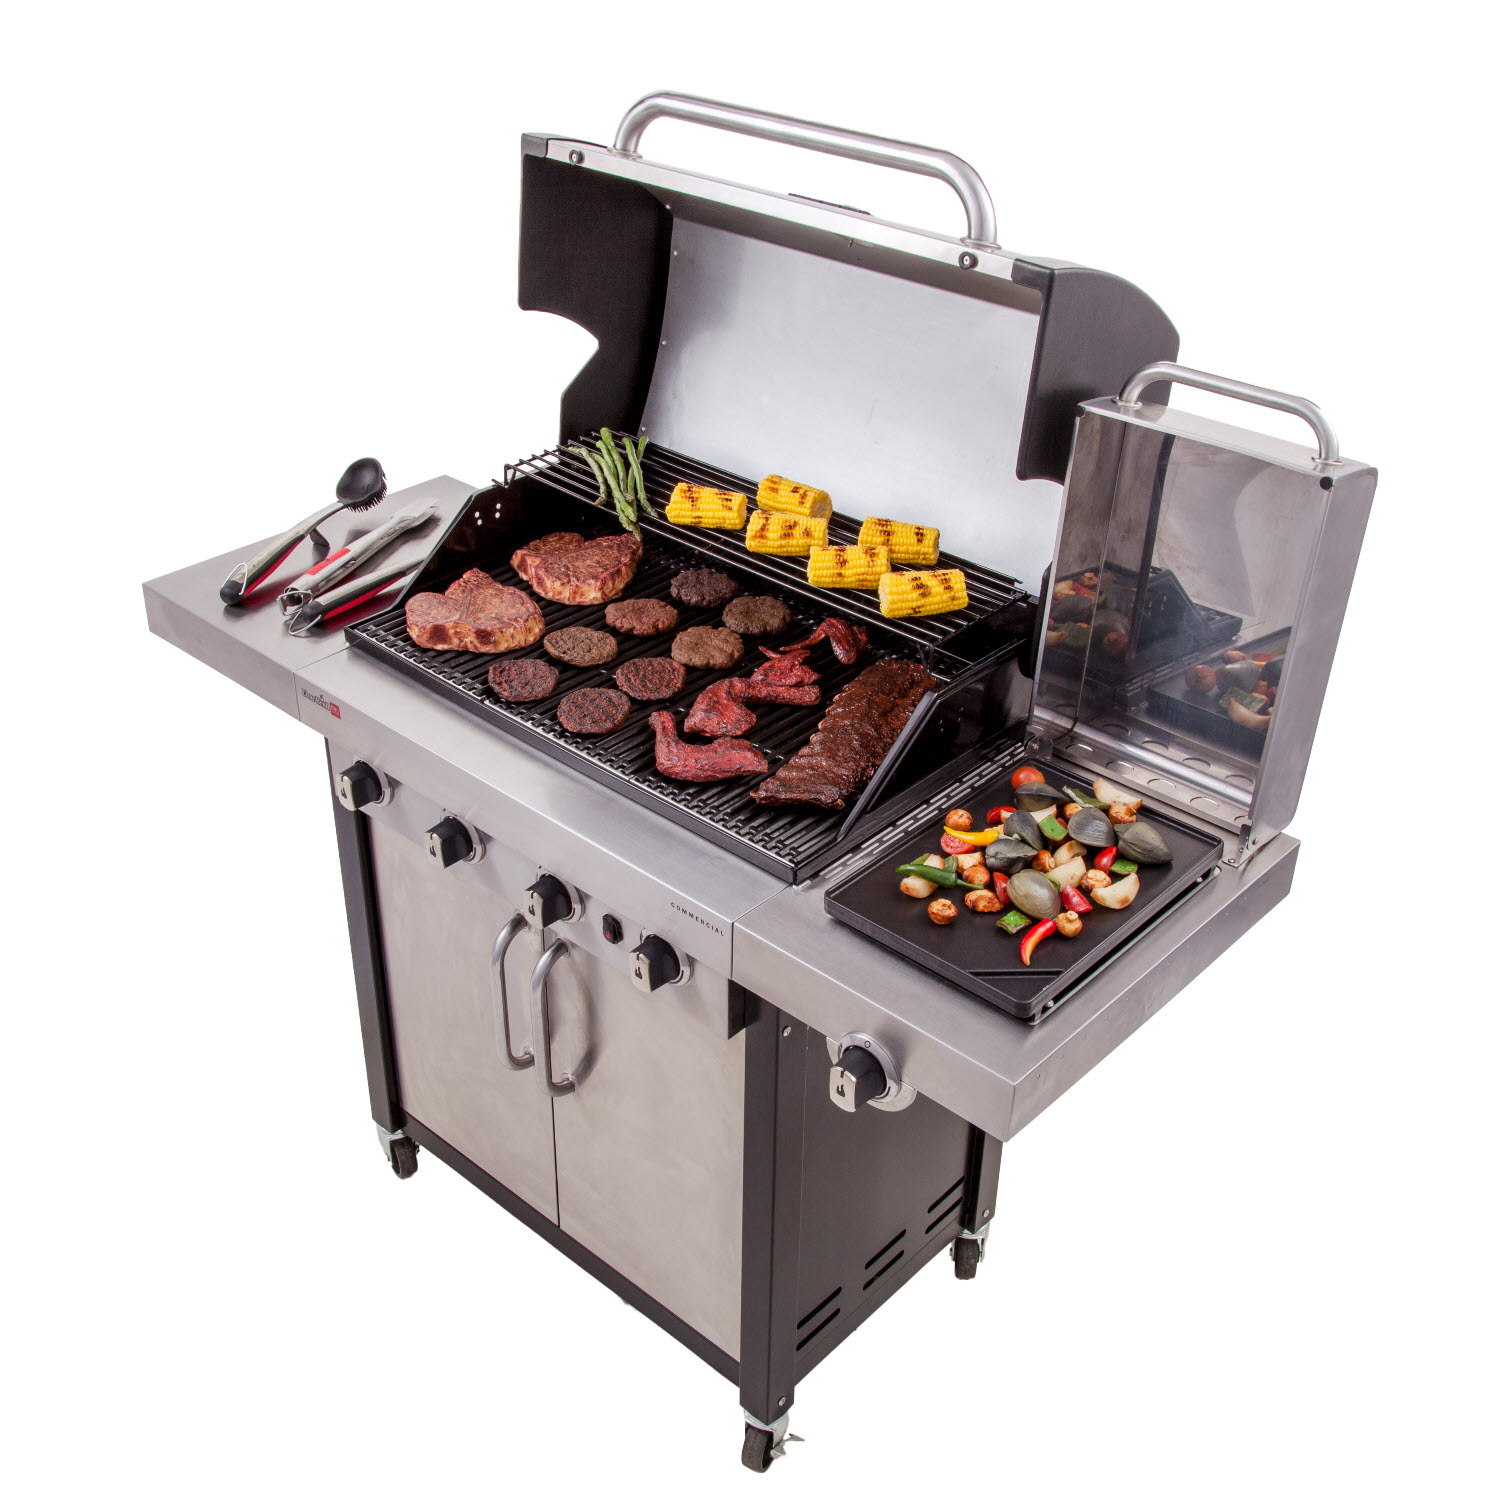 Commercial 4 Burner Gas Grill